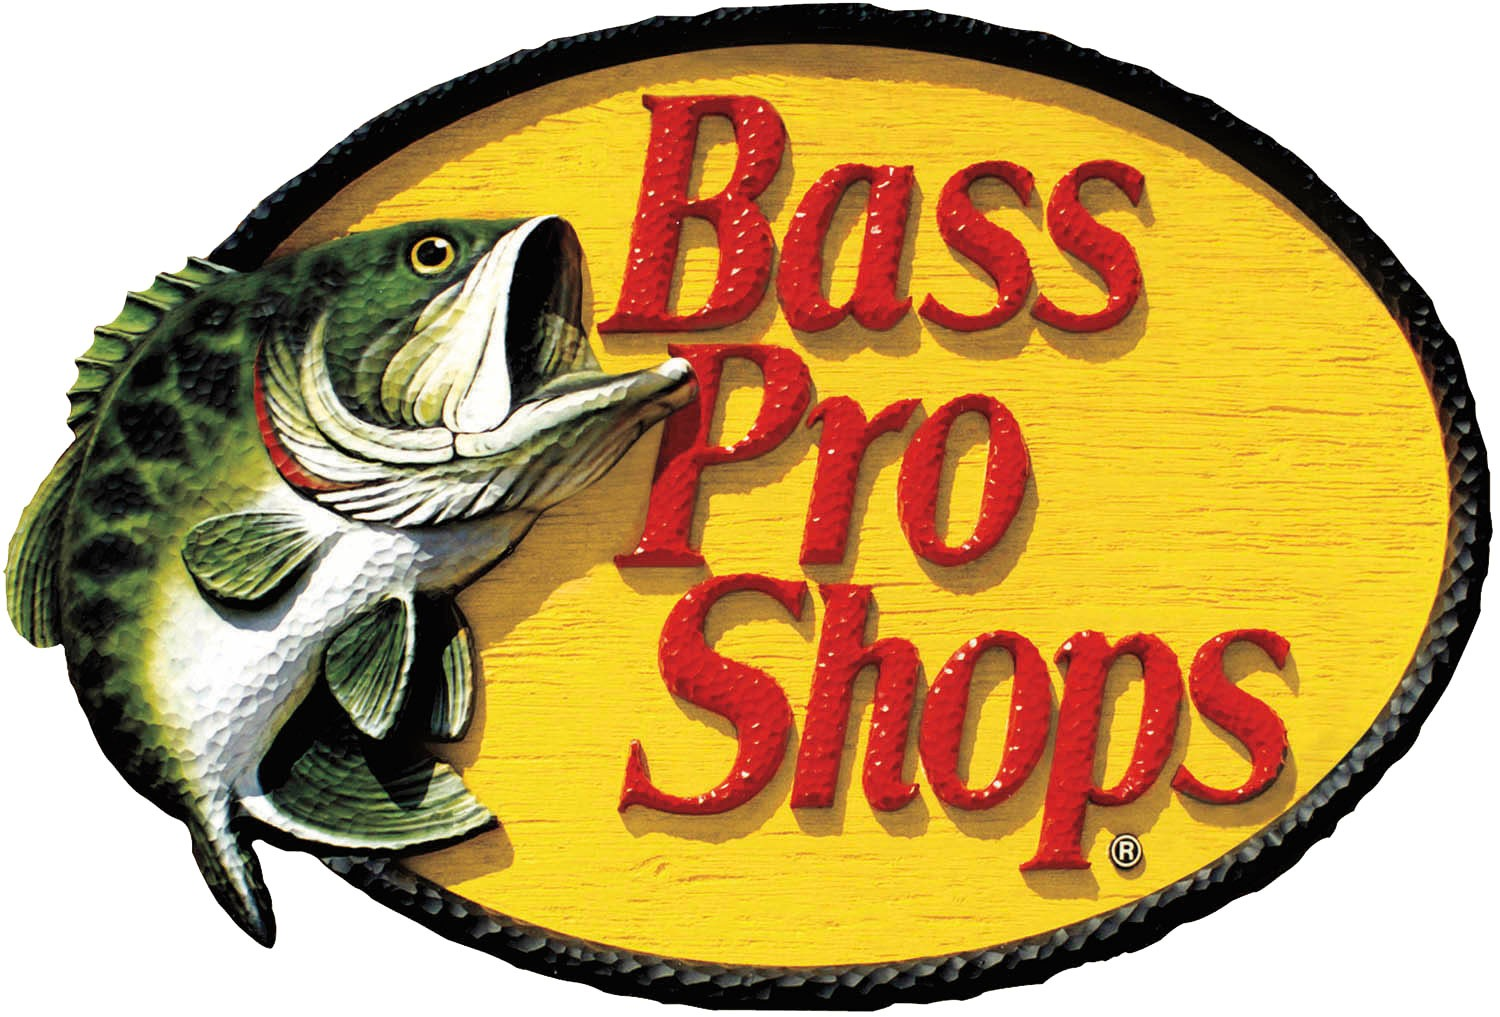 Bass Pro Shops Clearance Items: Up to 50% OFF